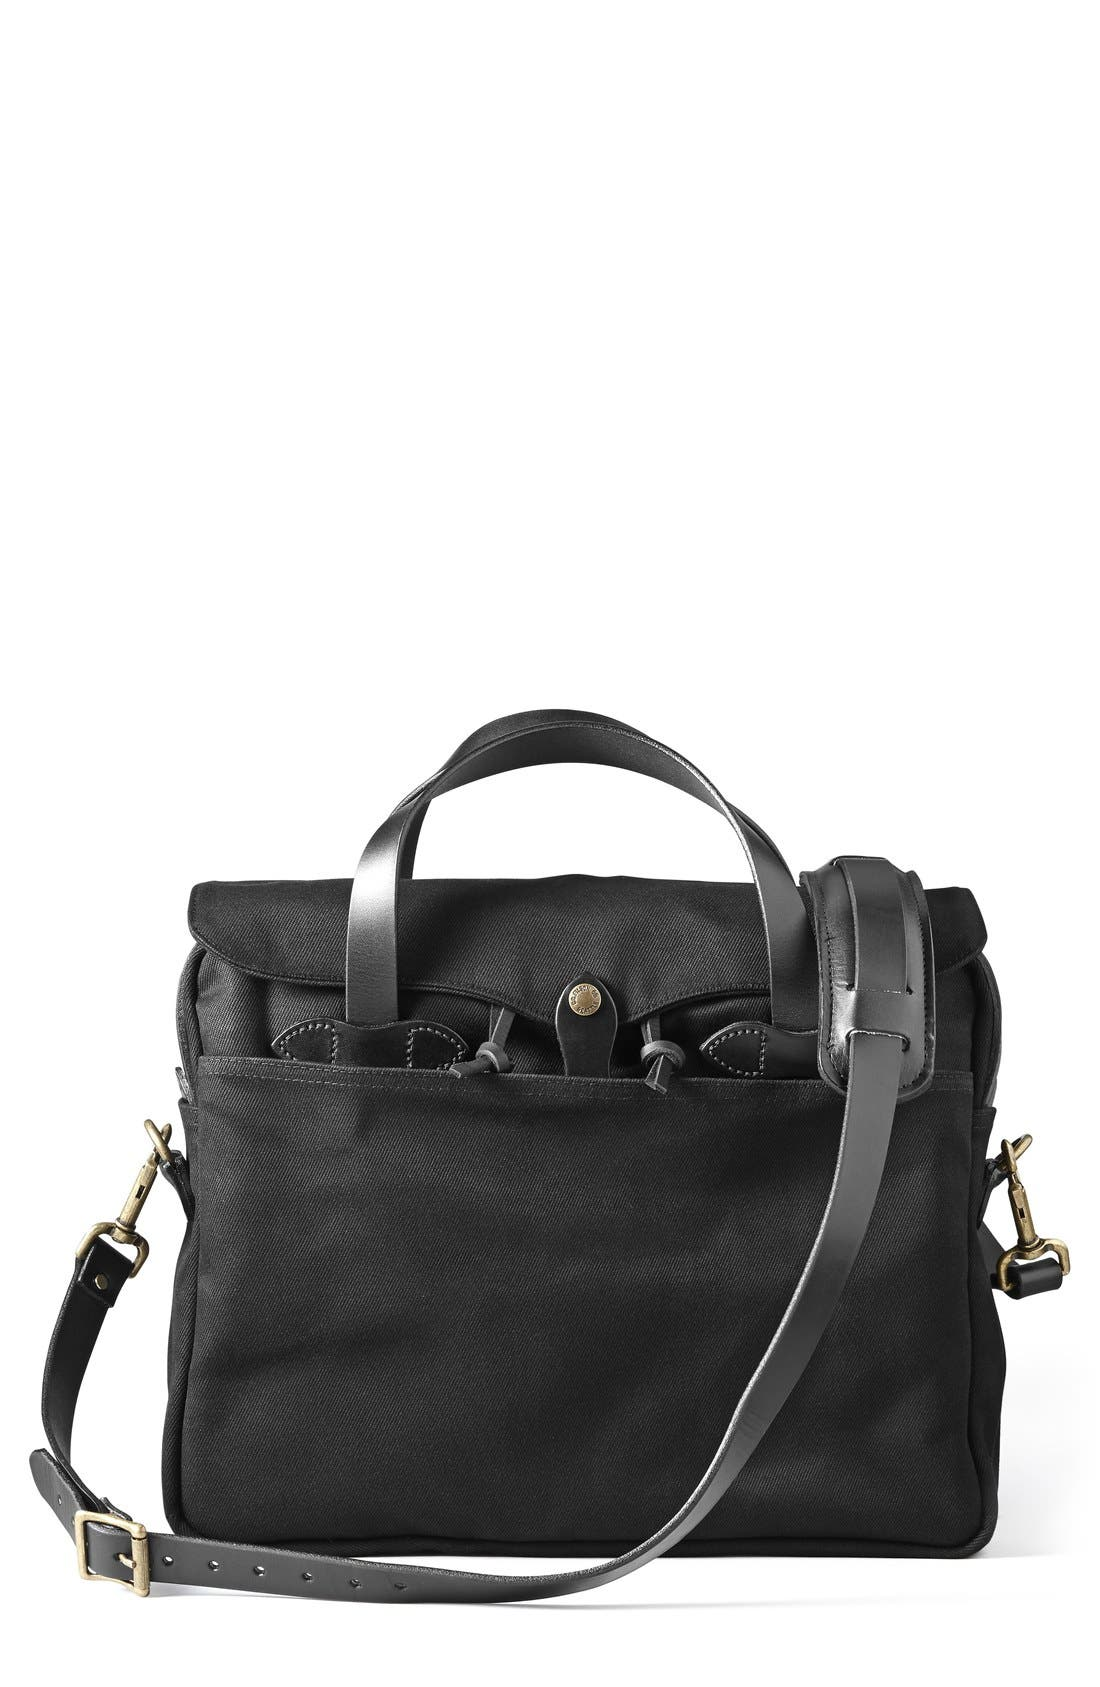 Women's & Men's Luggage & Travel Bags | Nordstrom